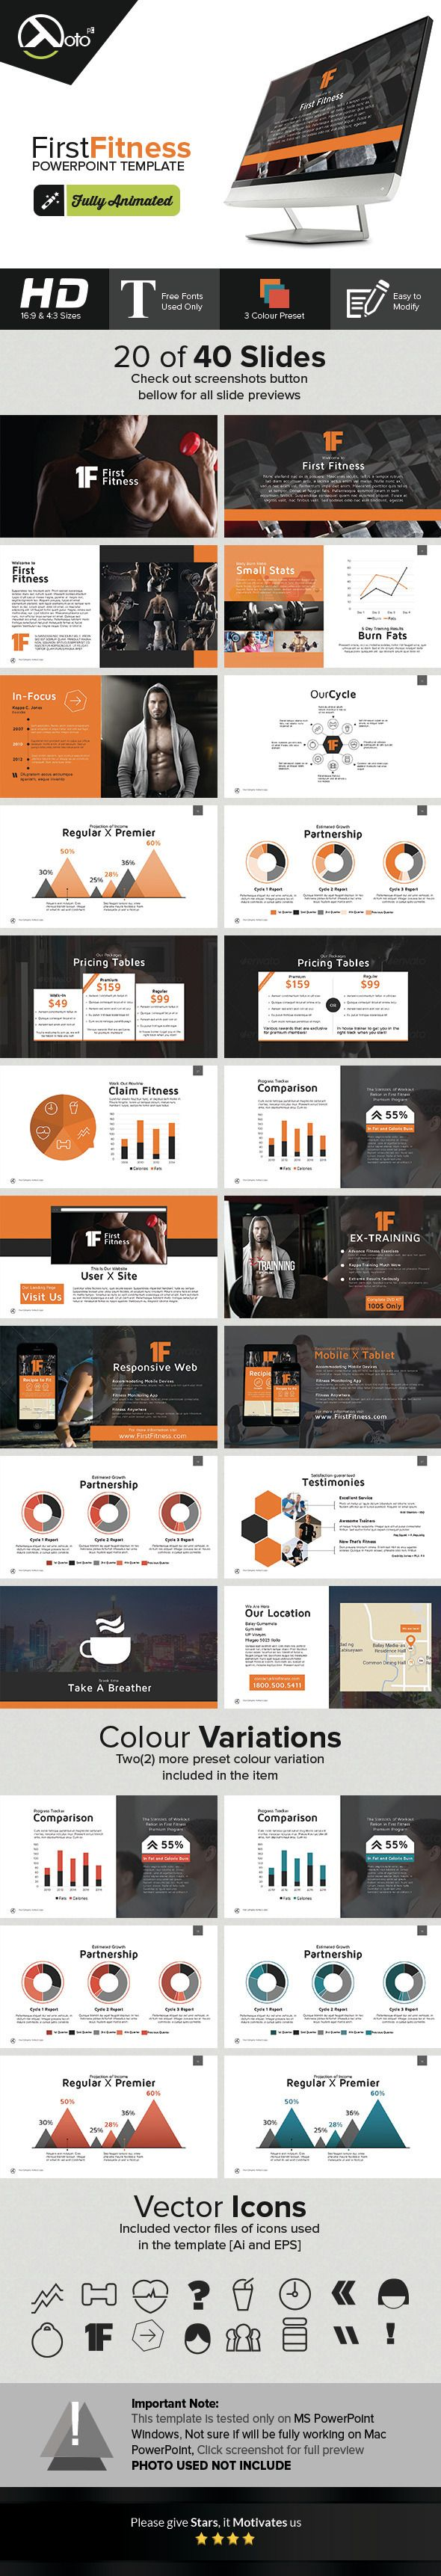 First Fitness Gym & Product Company Presentation.